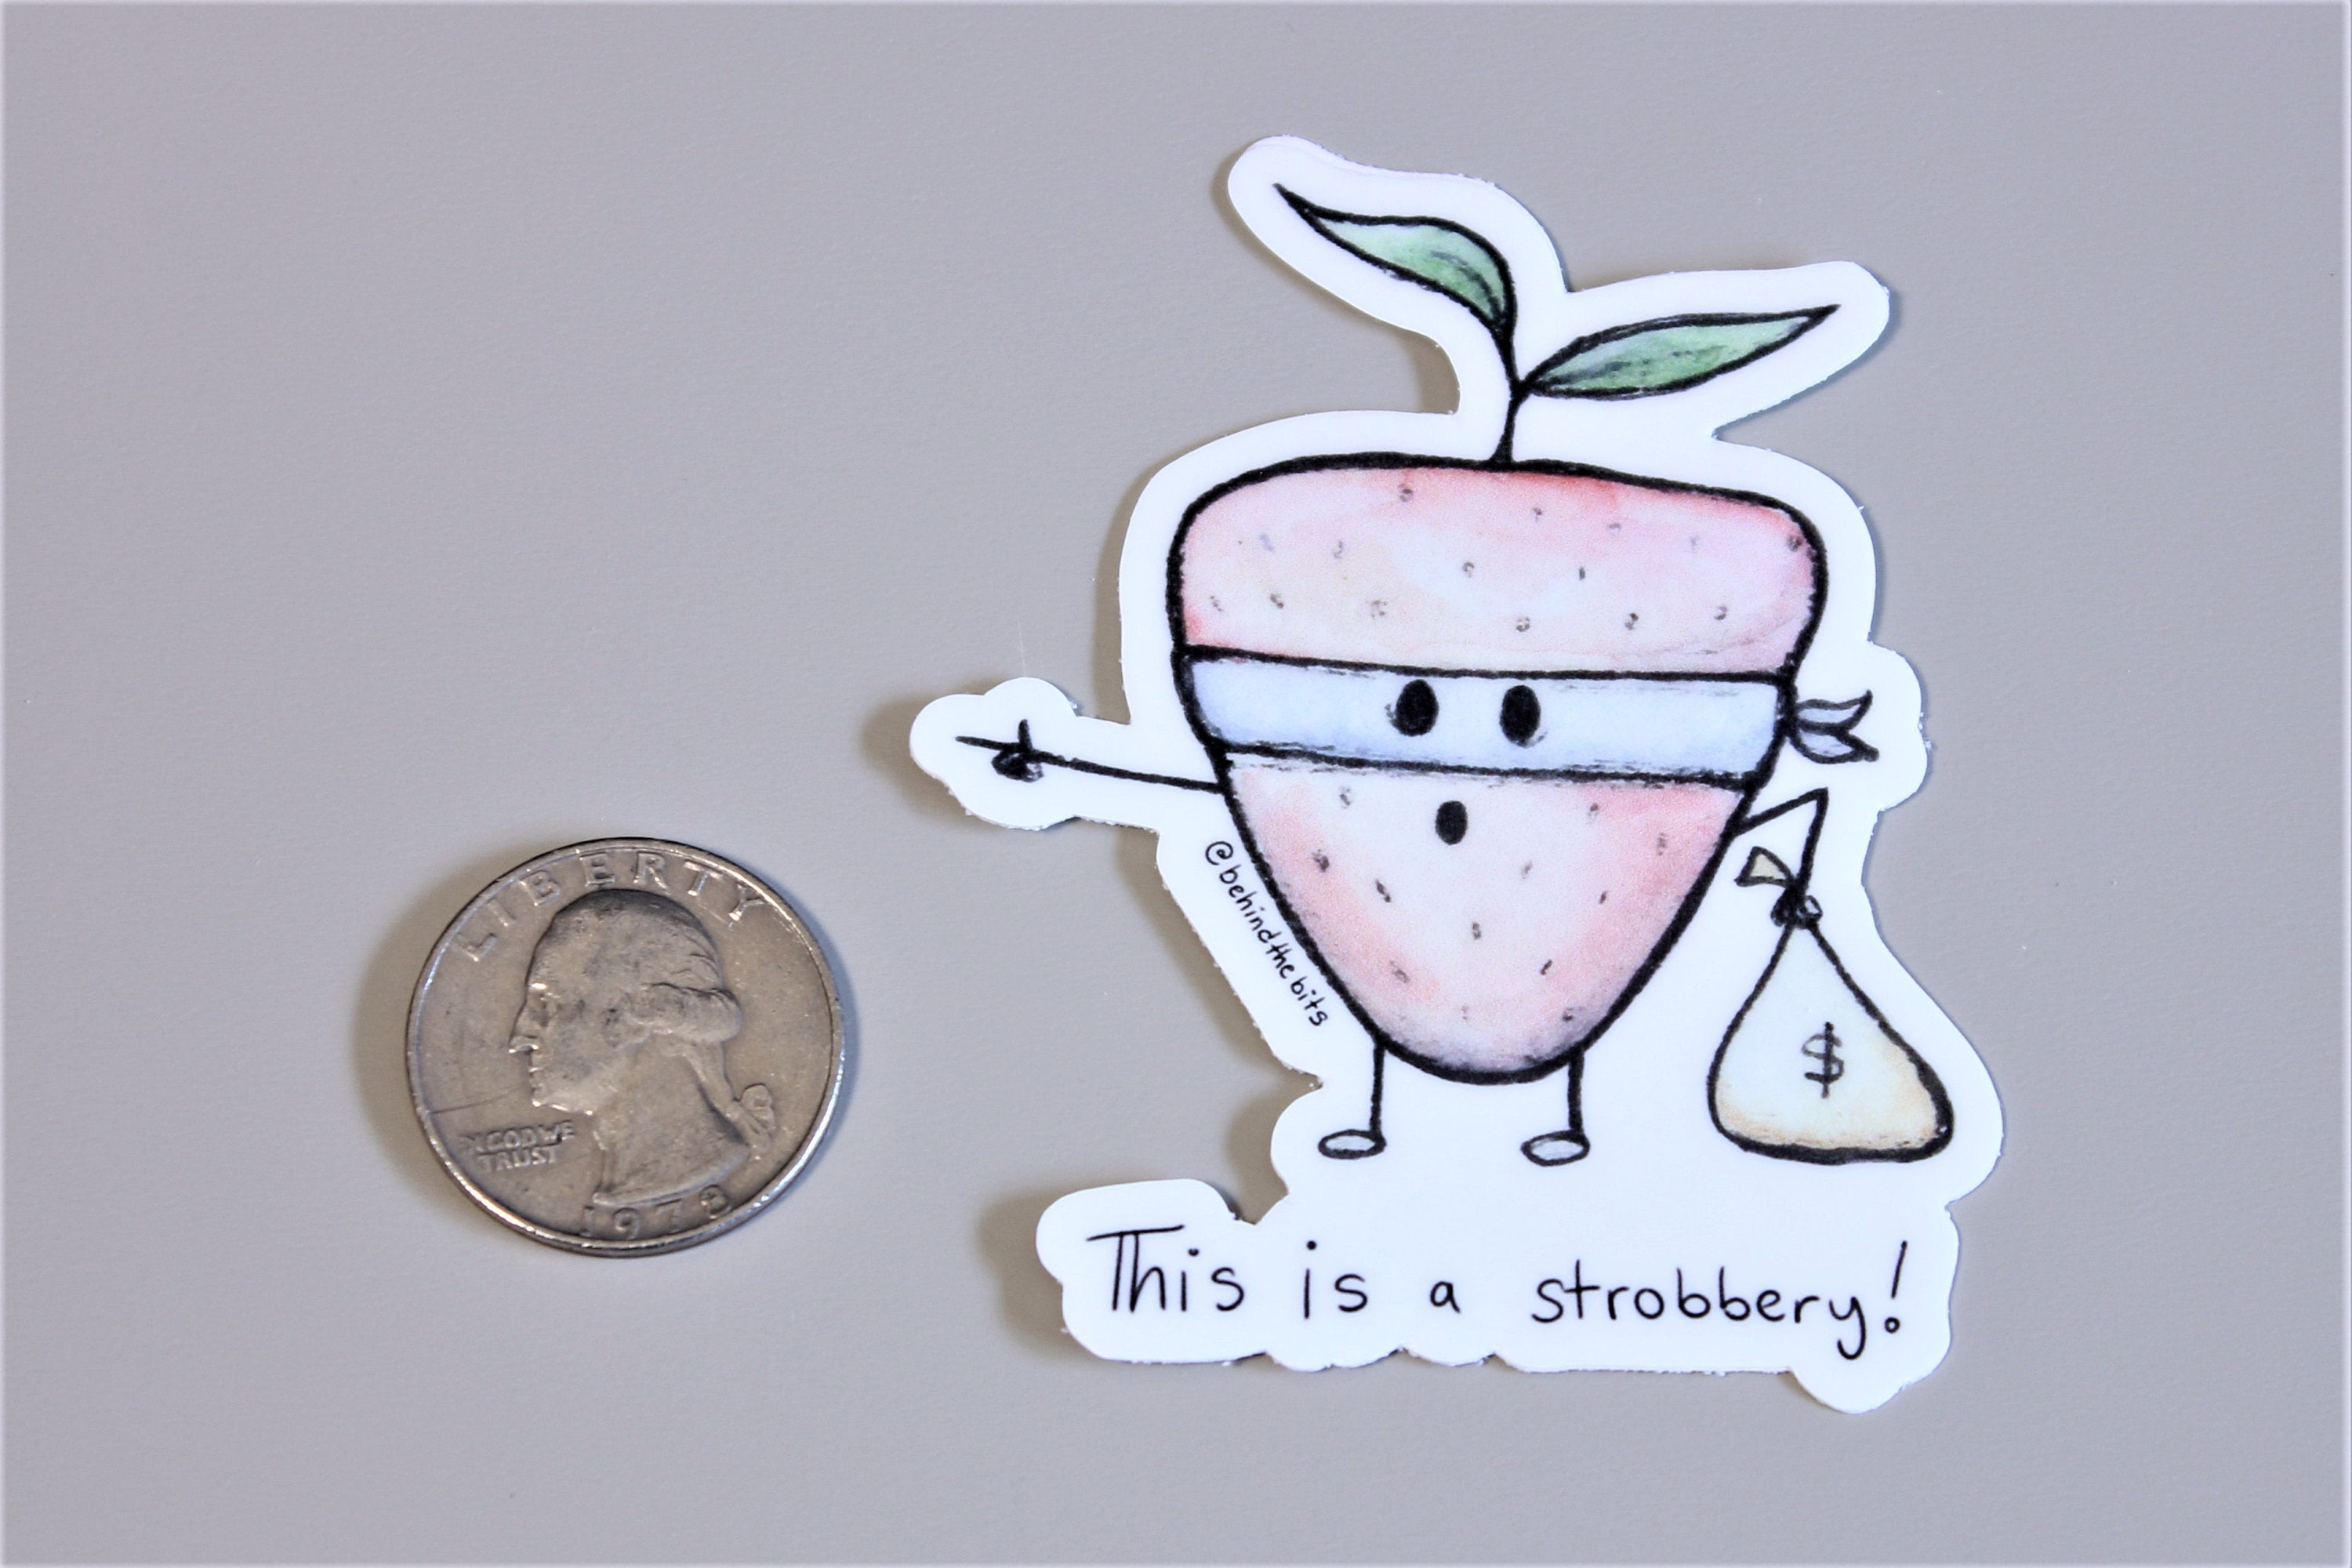 "This is a Strobbery - 2.39"" x 3"" Die Cut Sticker/Magnet (NEW)"